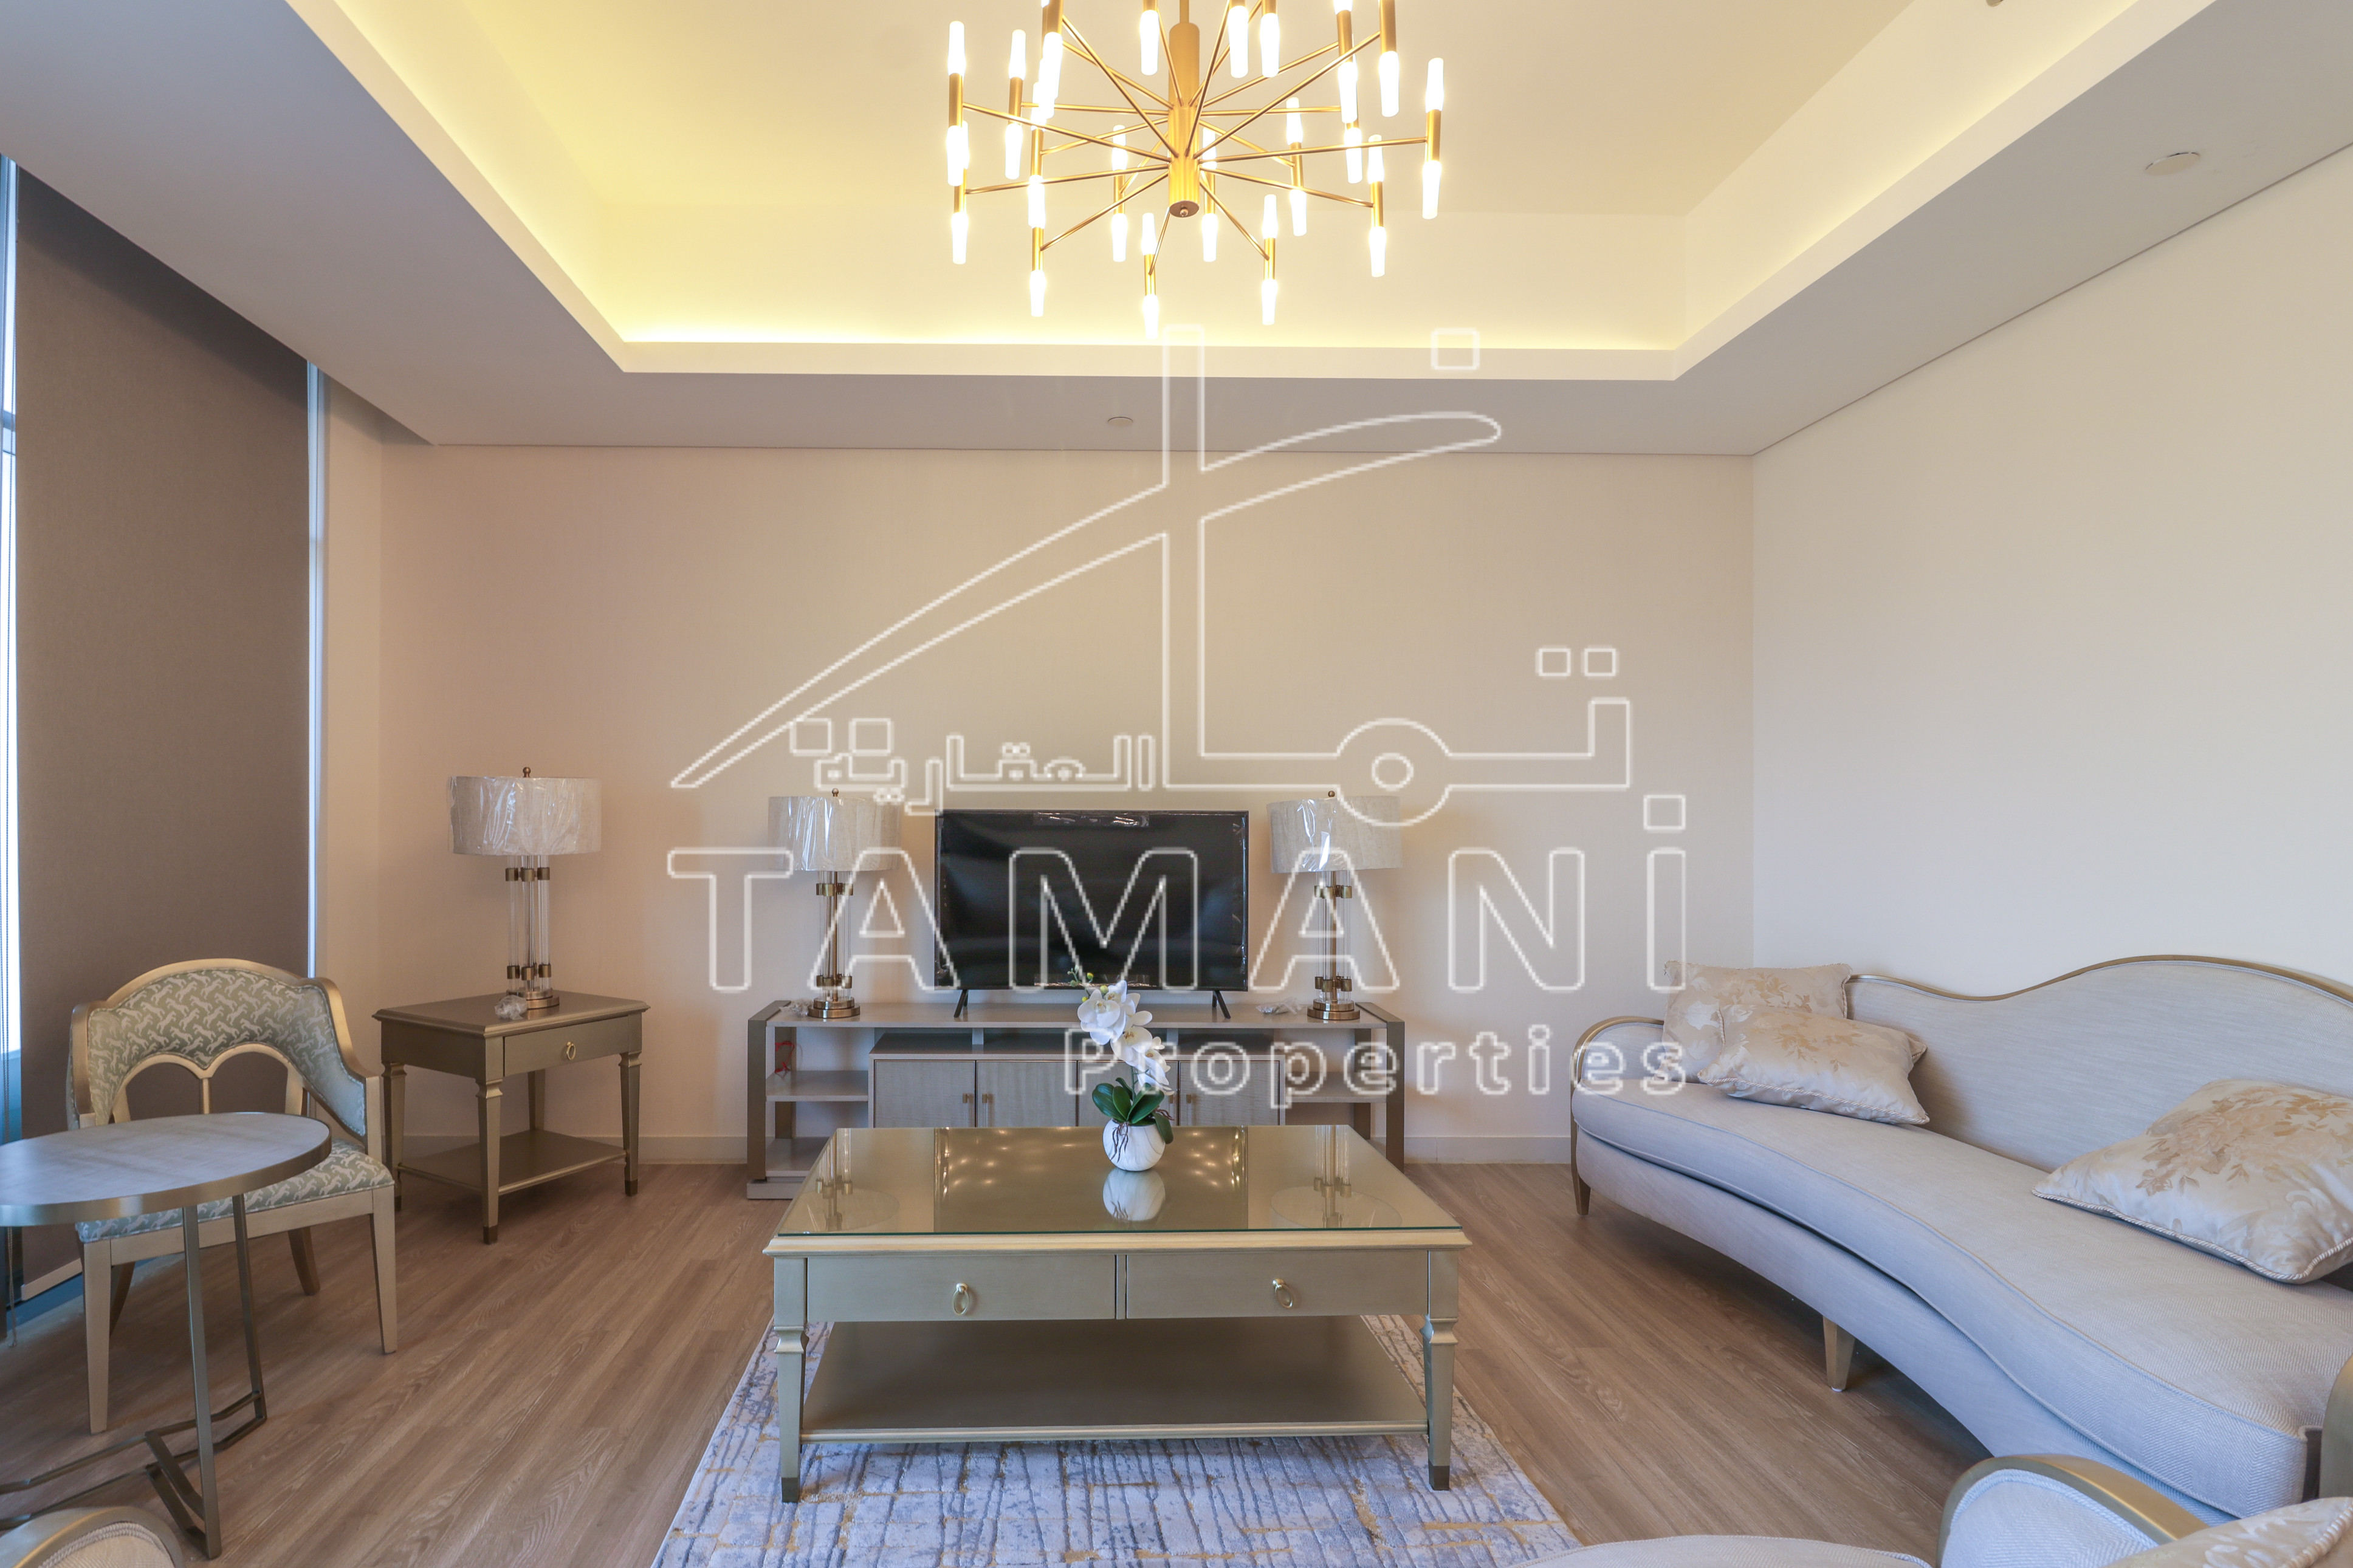 Brand new luxury furniture upgraded 150k - Mada Residences by ARTAR